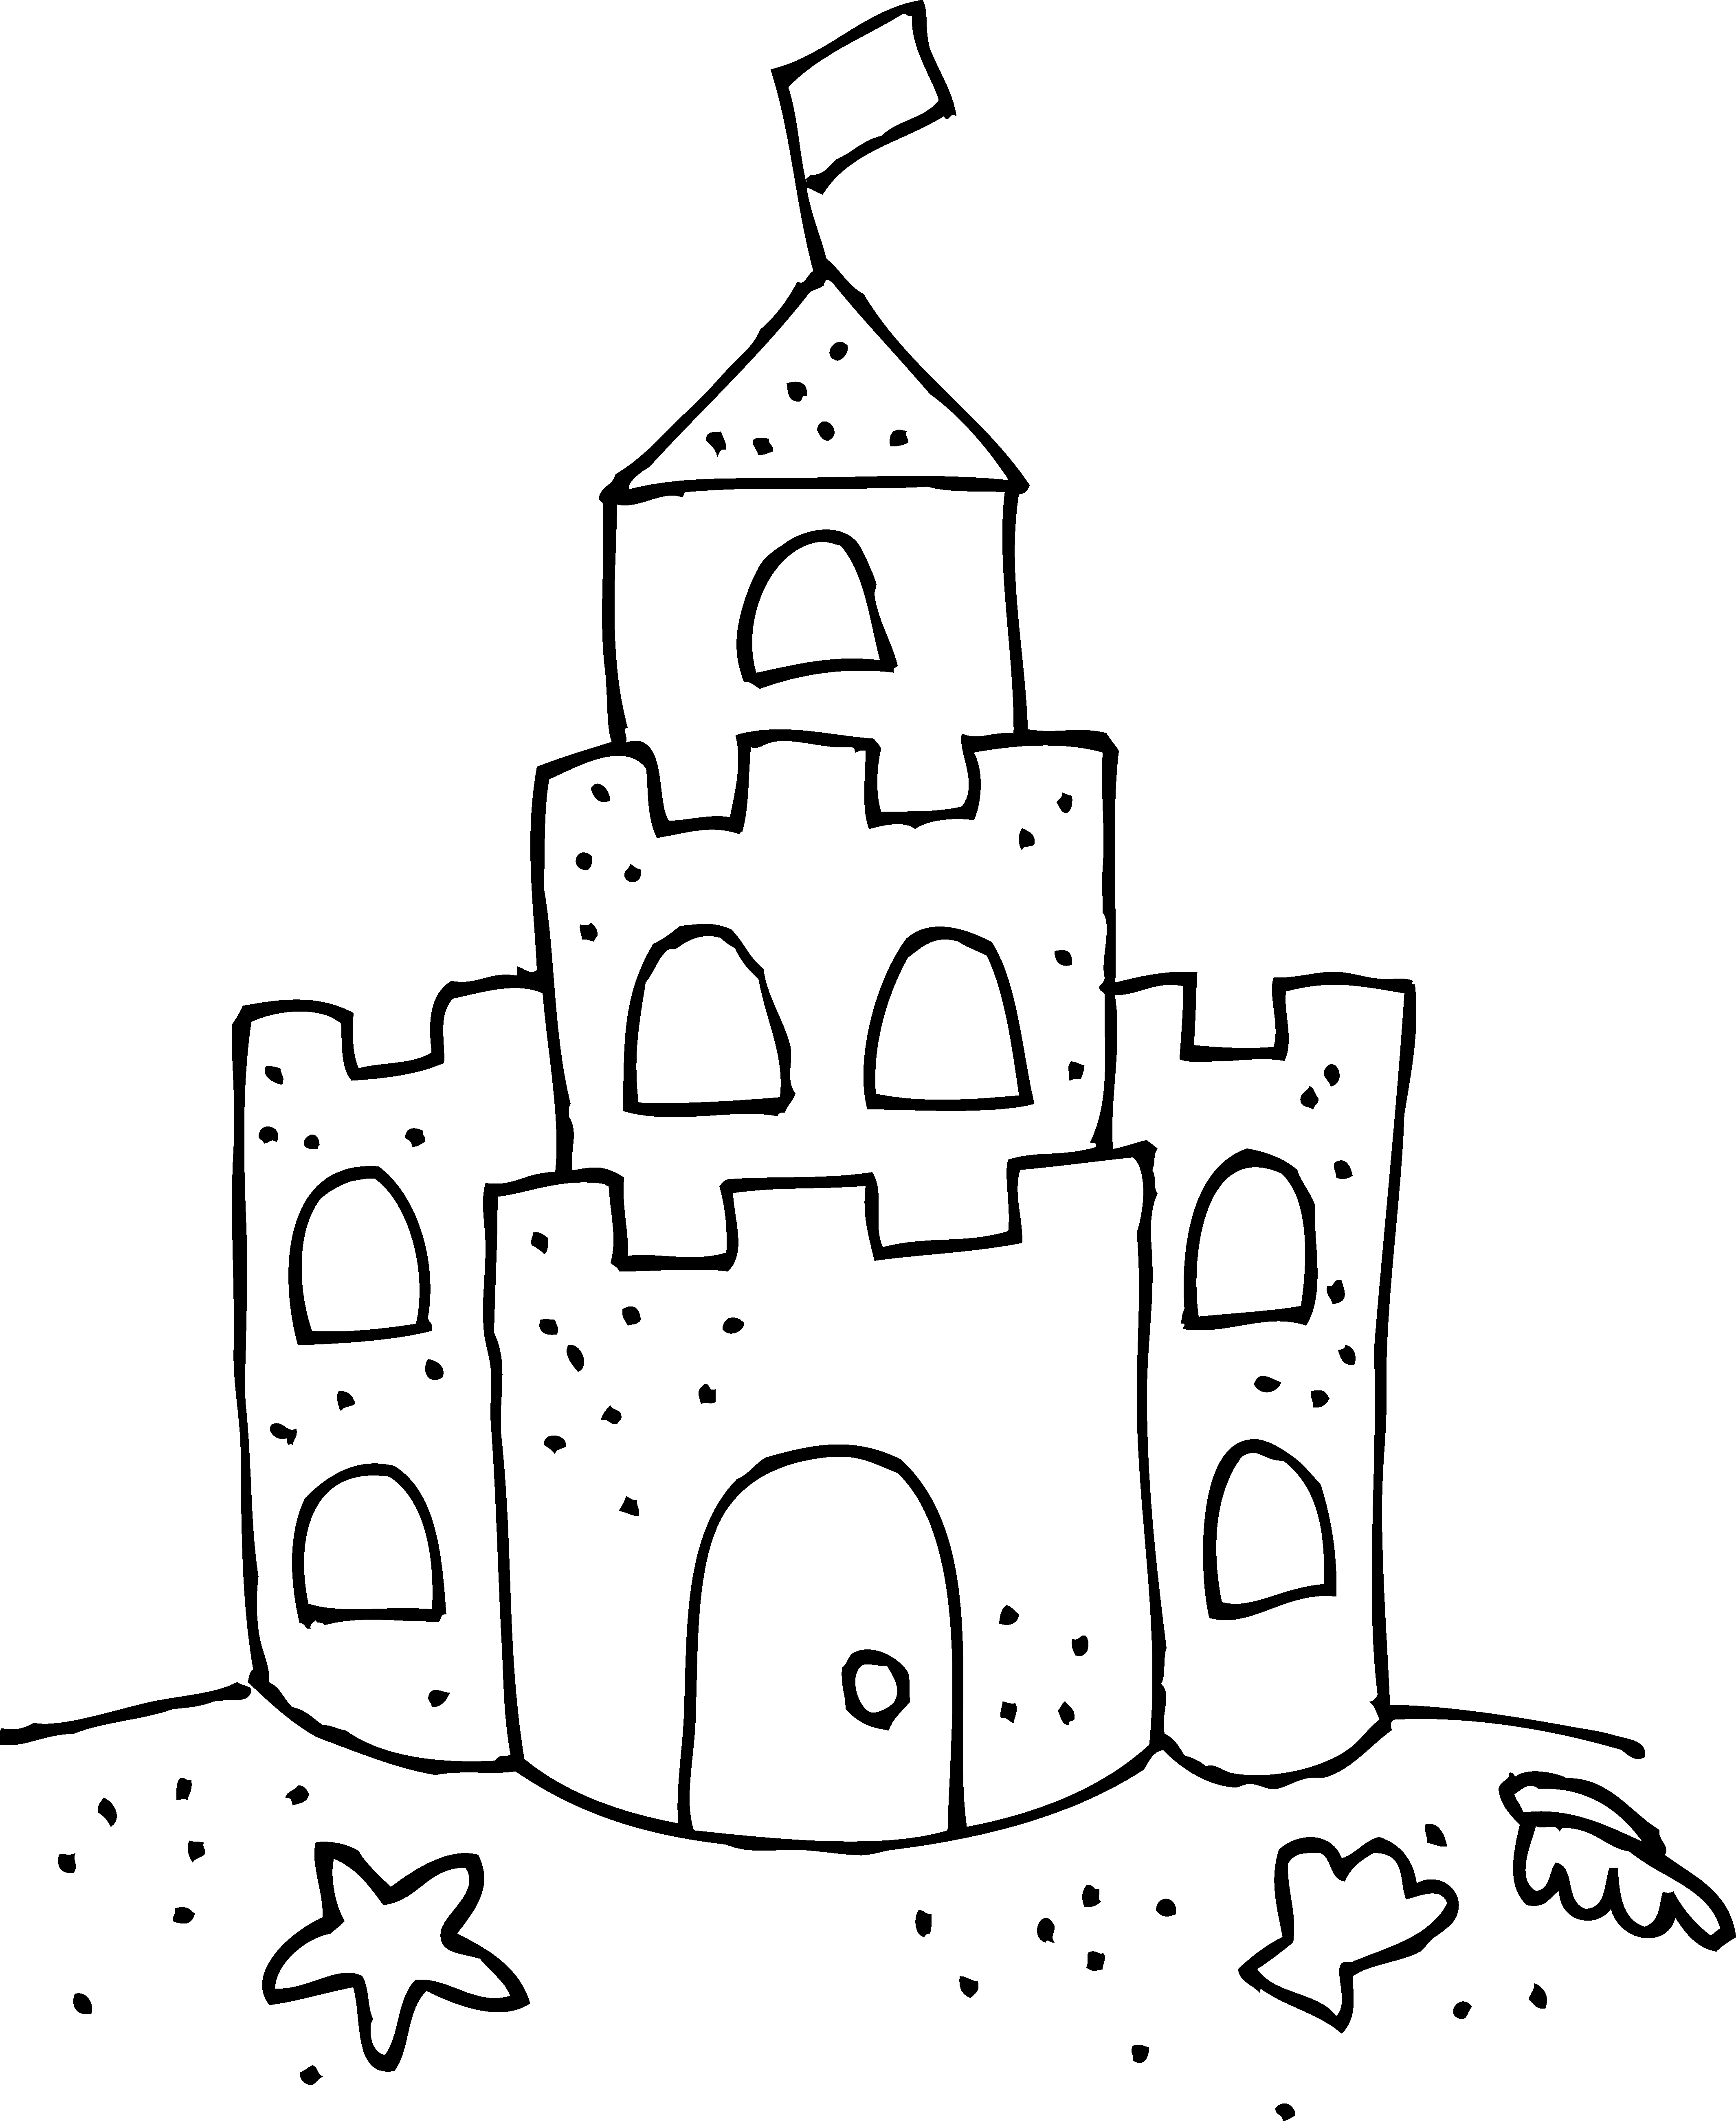 sand castle coloring pages - photo#1